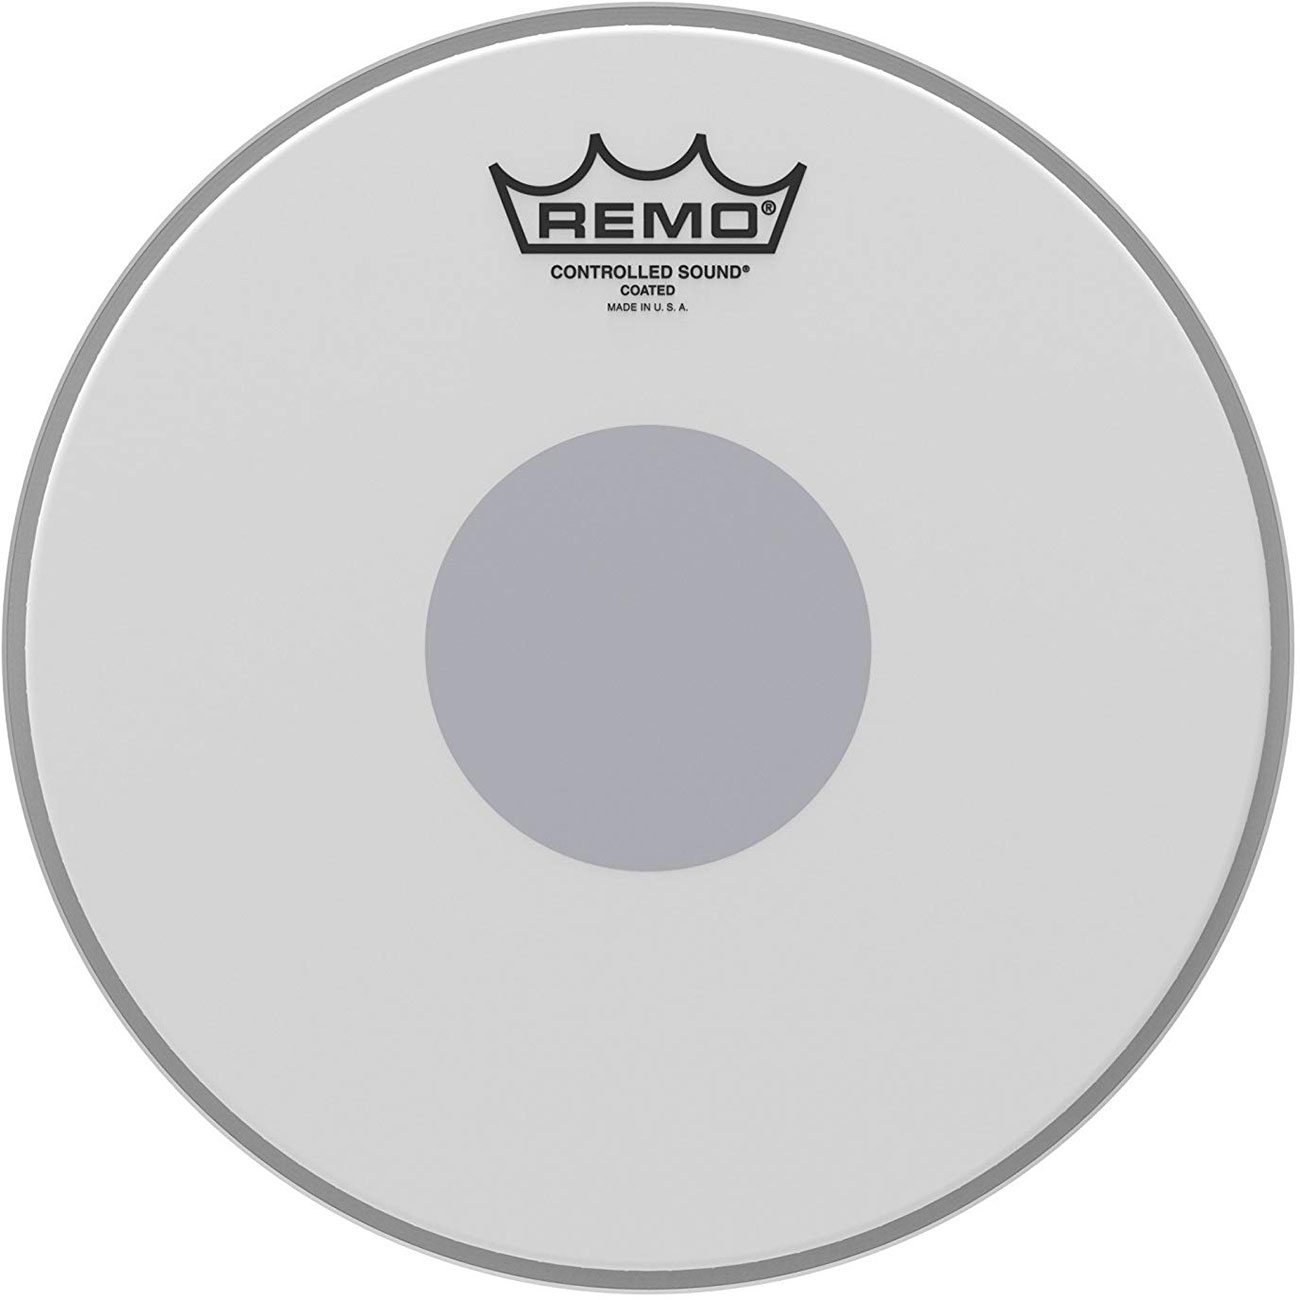 """Remo 10"""" Controlled Sound Coated Drum Head with Black Dot"""